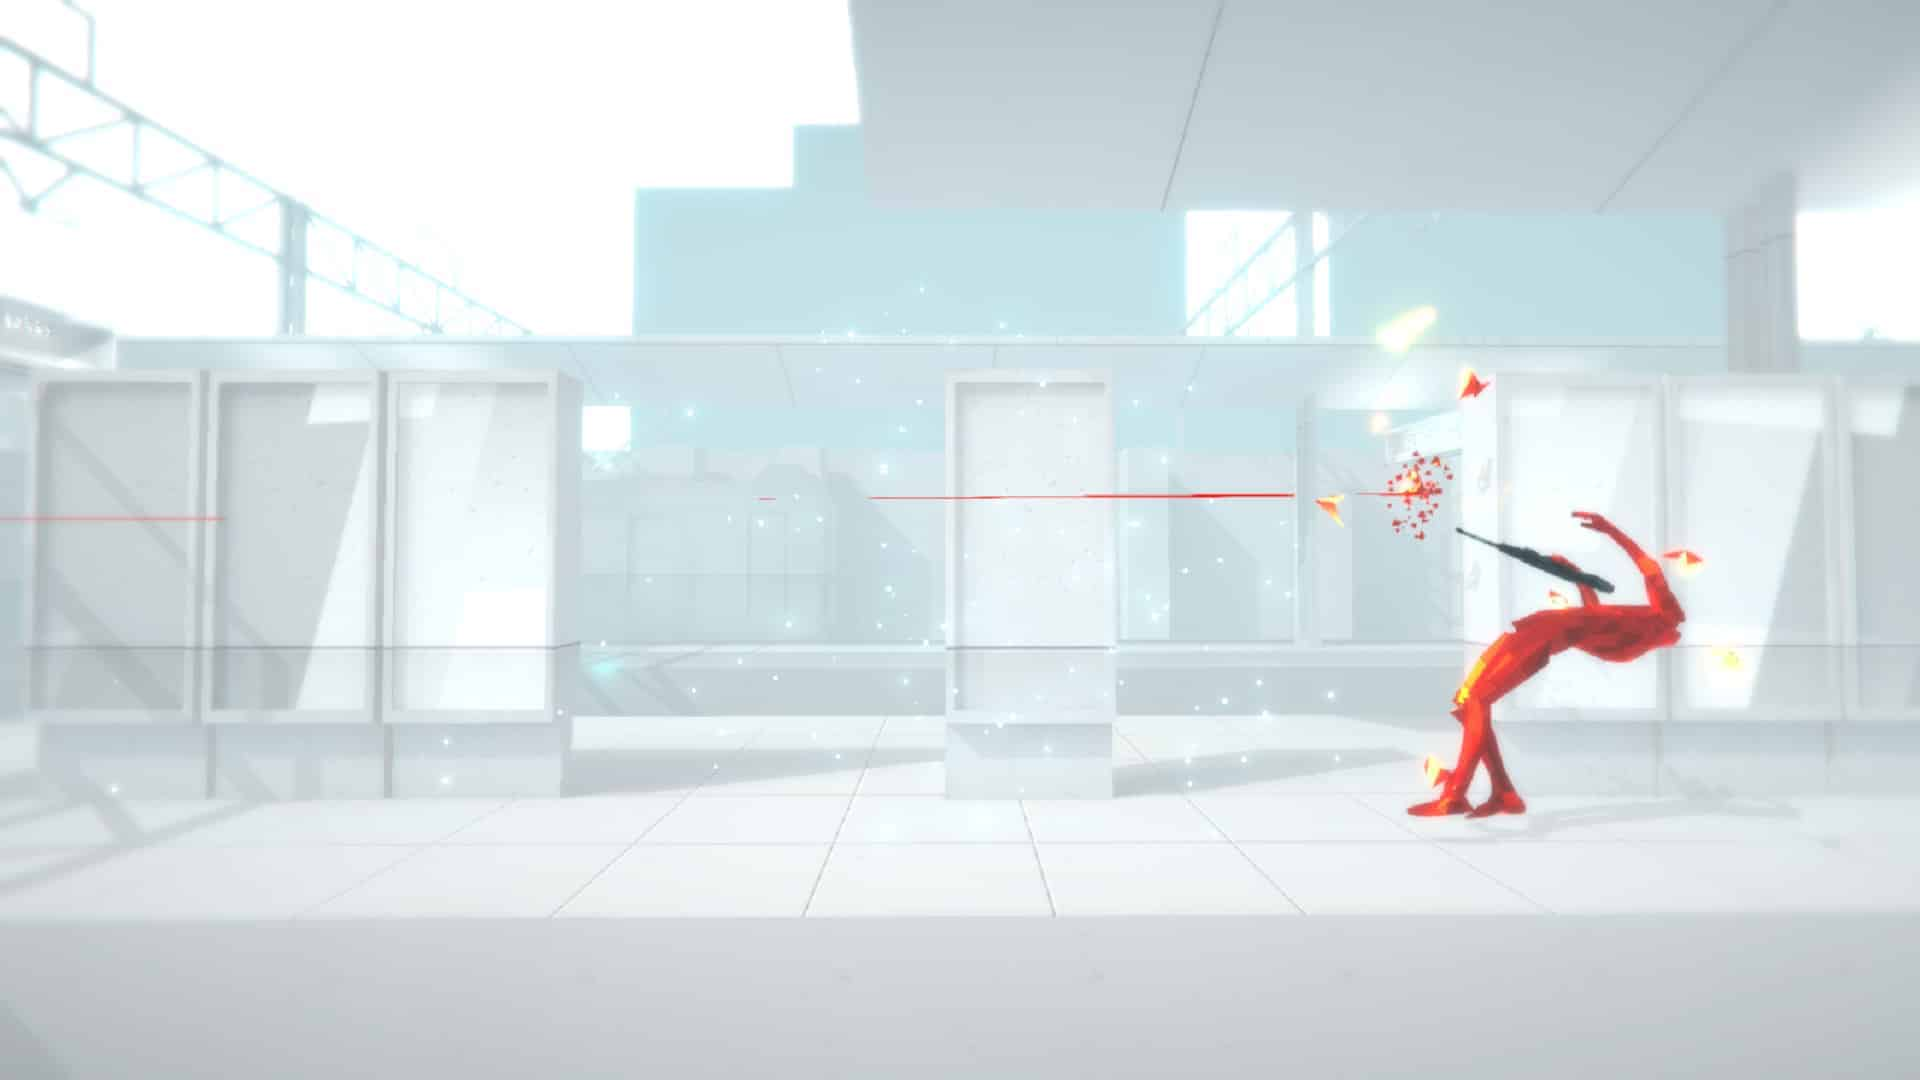 SuperHOT - Play SuperHOT online at Agame.com